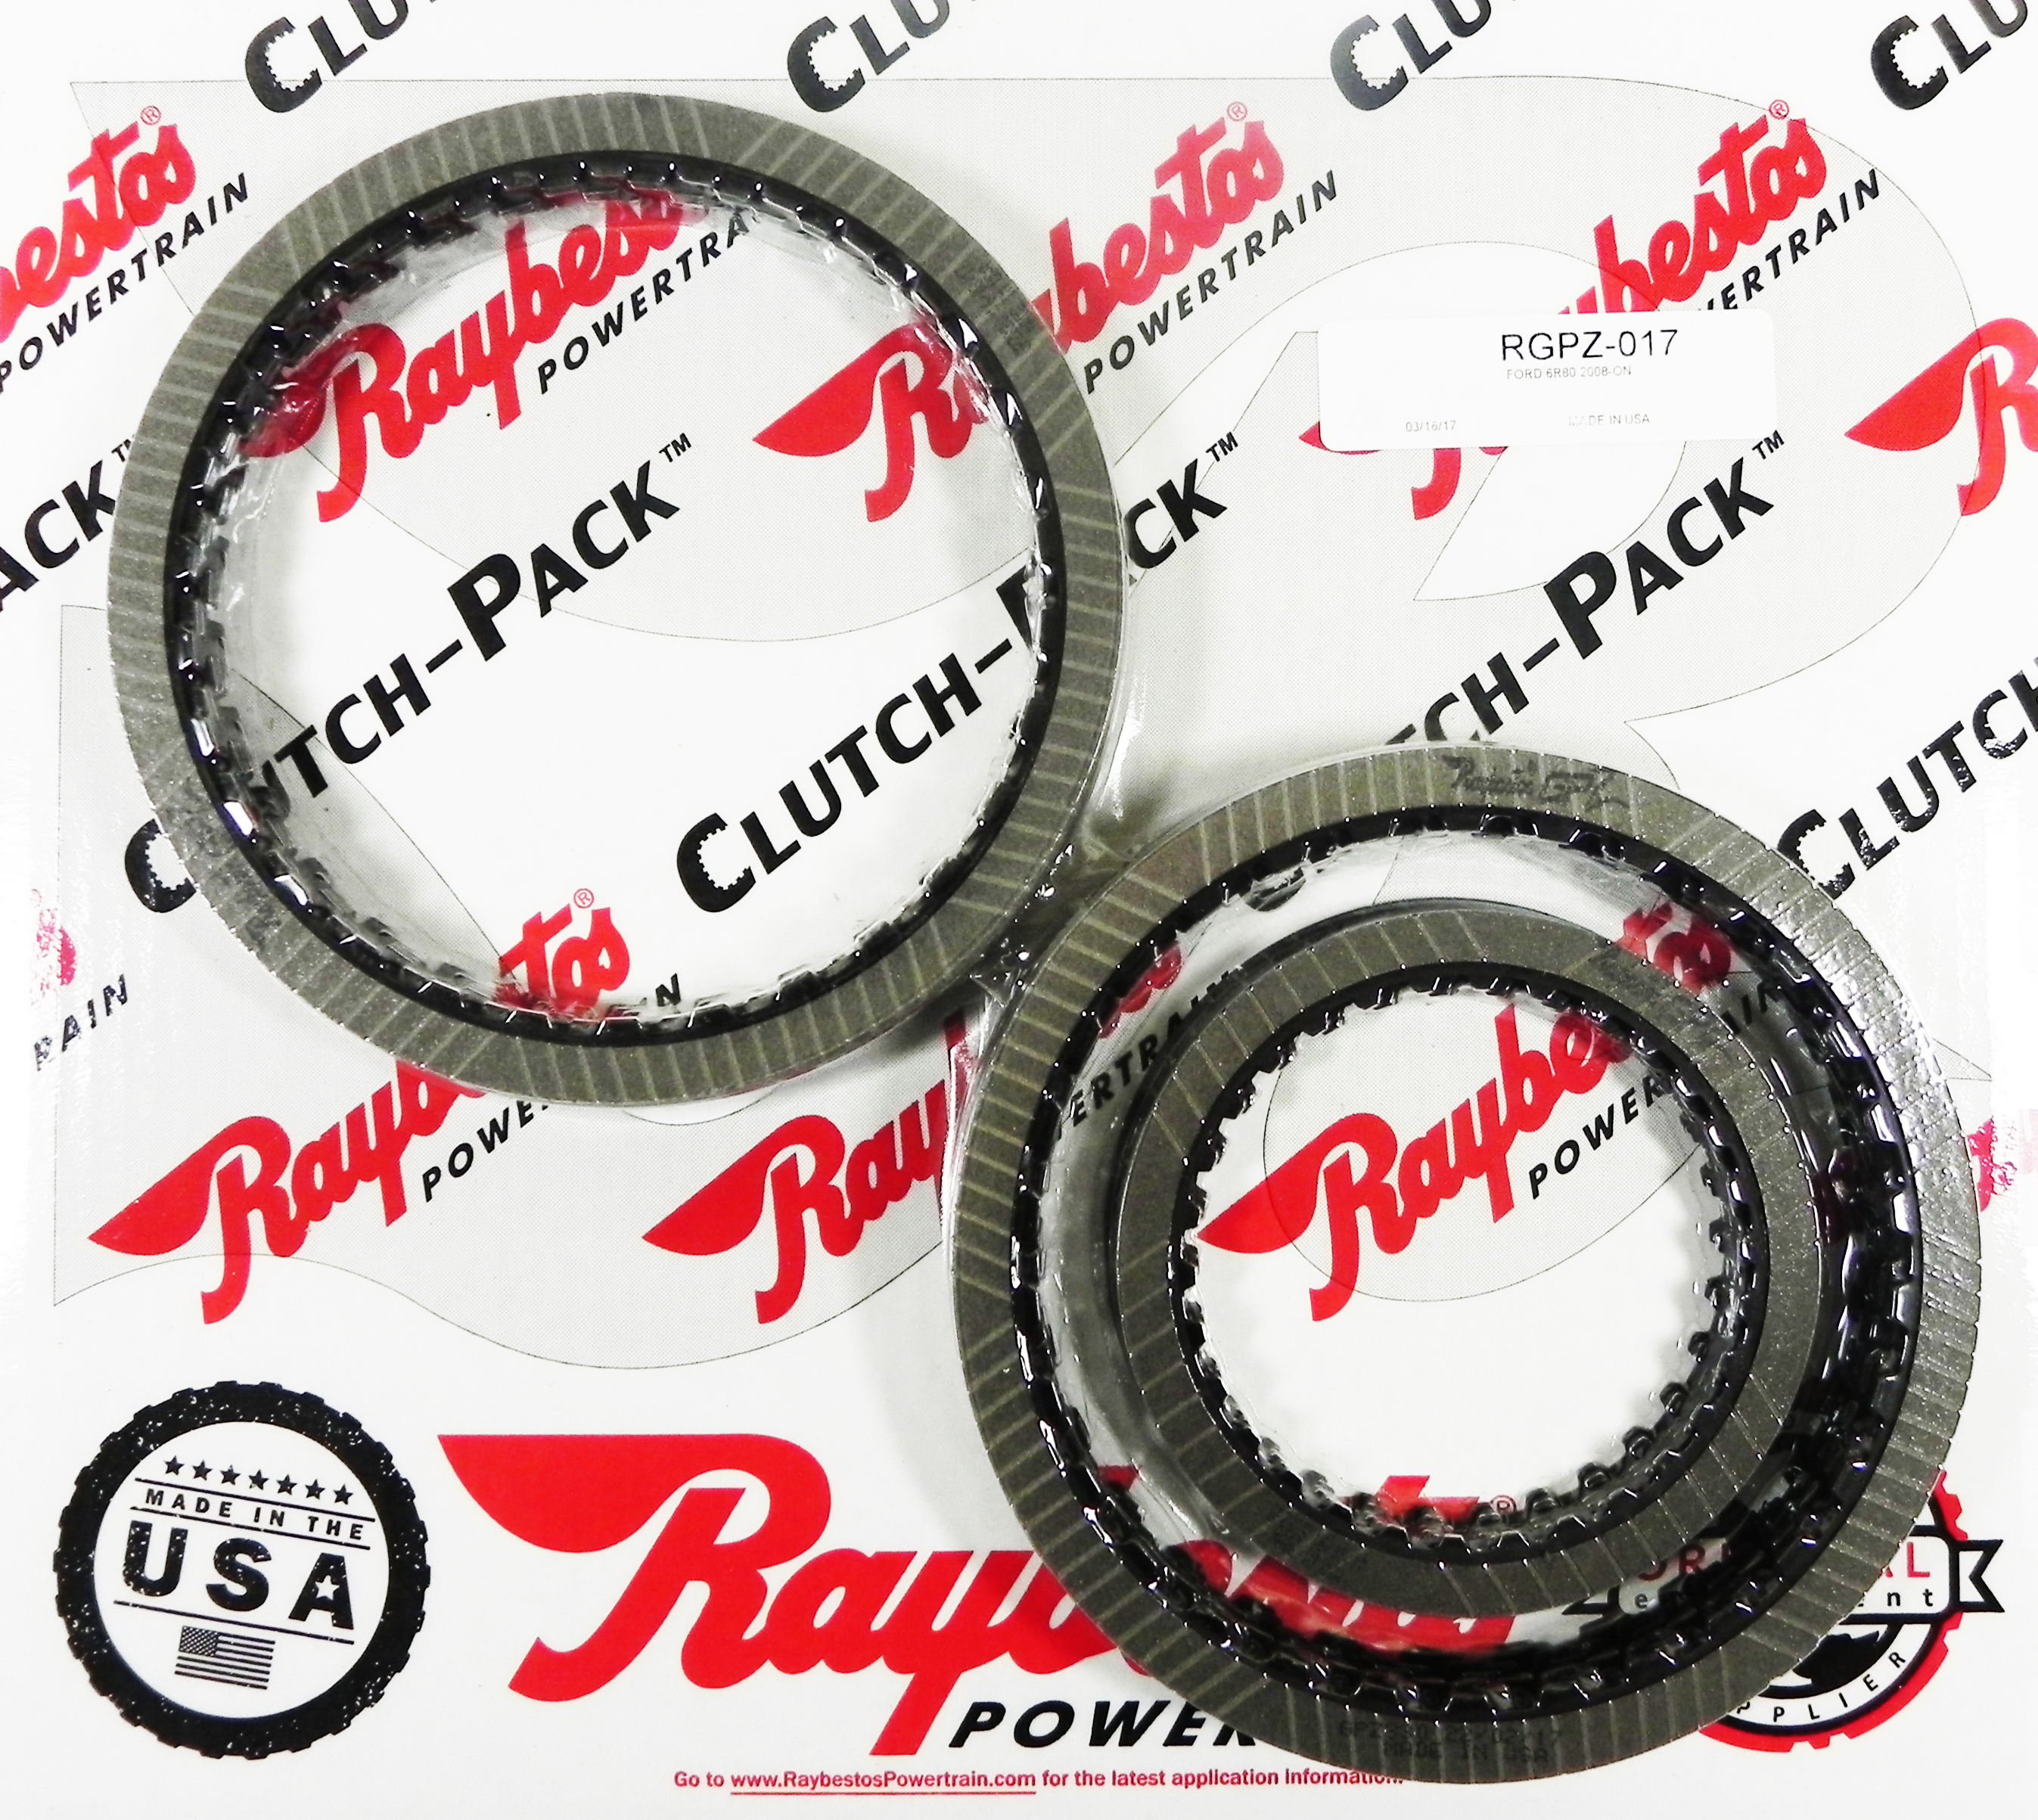 6R80 GPZ Friction Clutch Pack